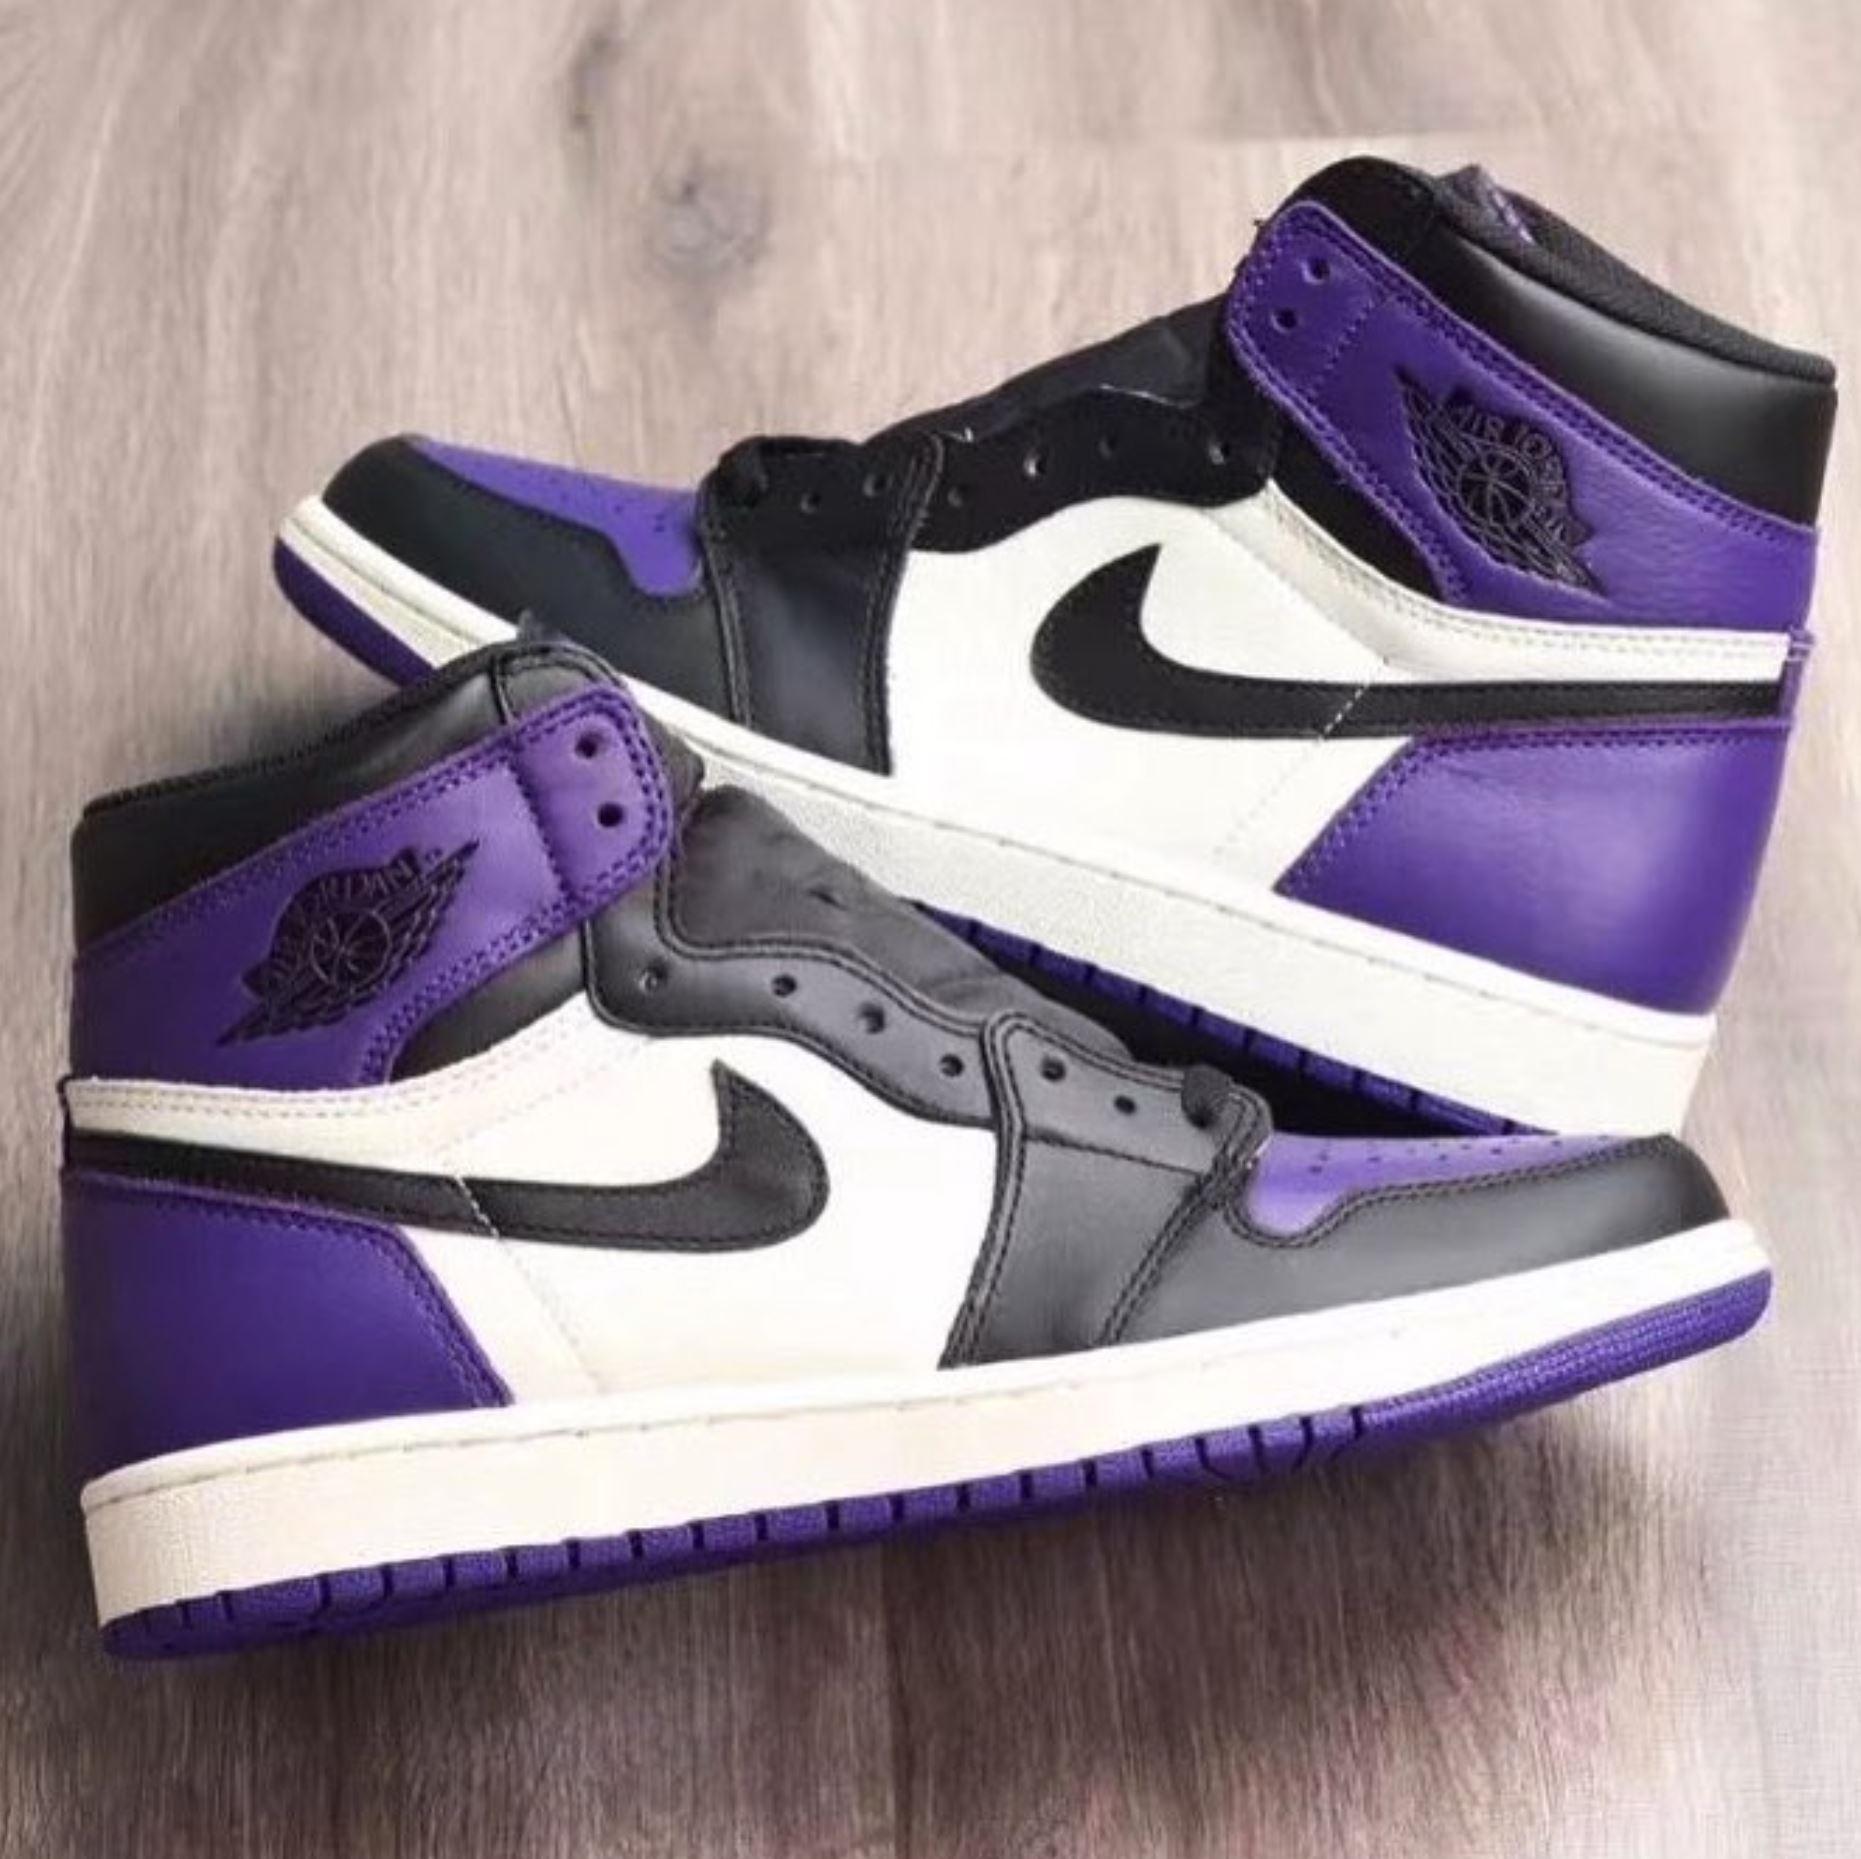 online store 24380 383ba The Air Jordan 1 'Court Purple' Release is Scheduled for ...